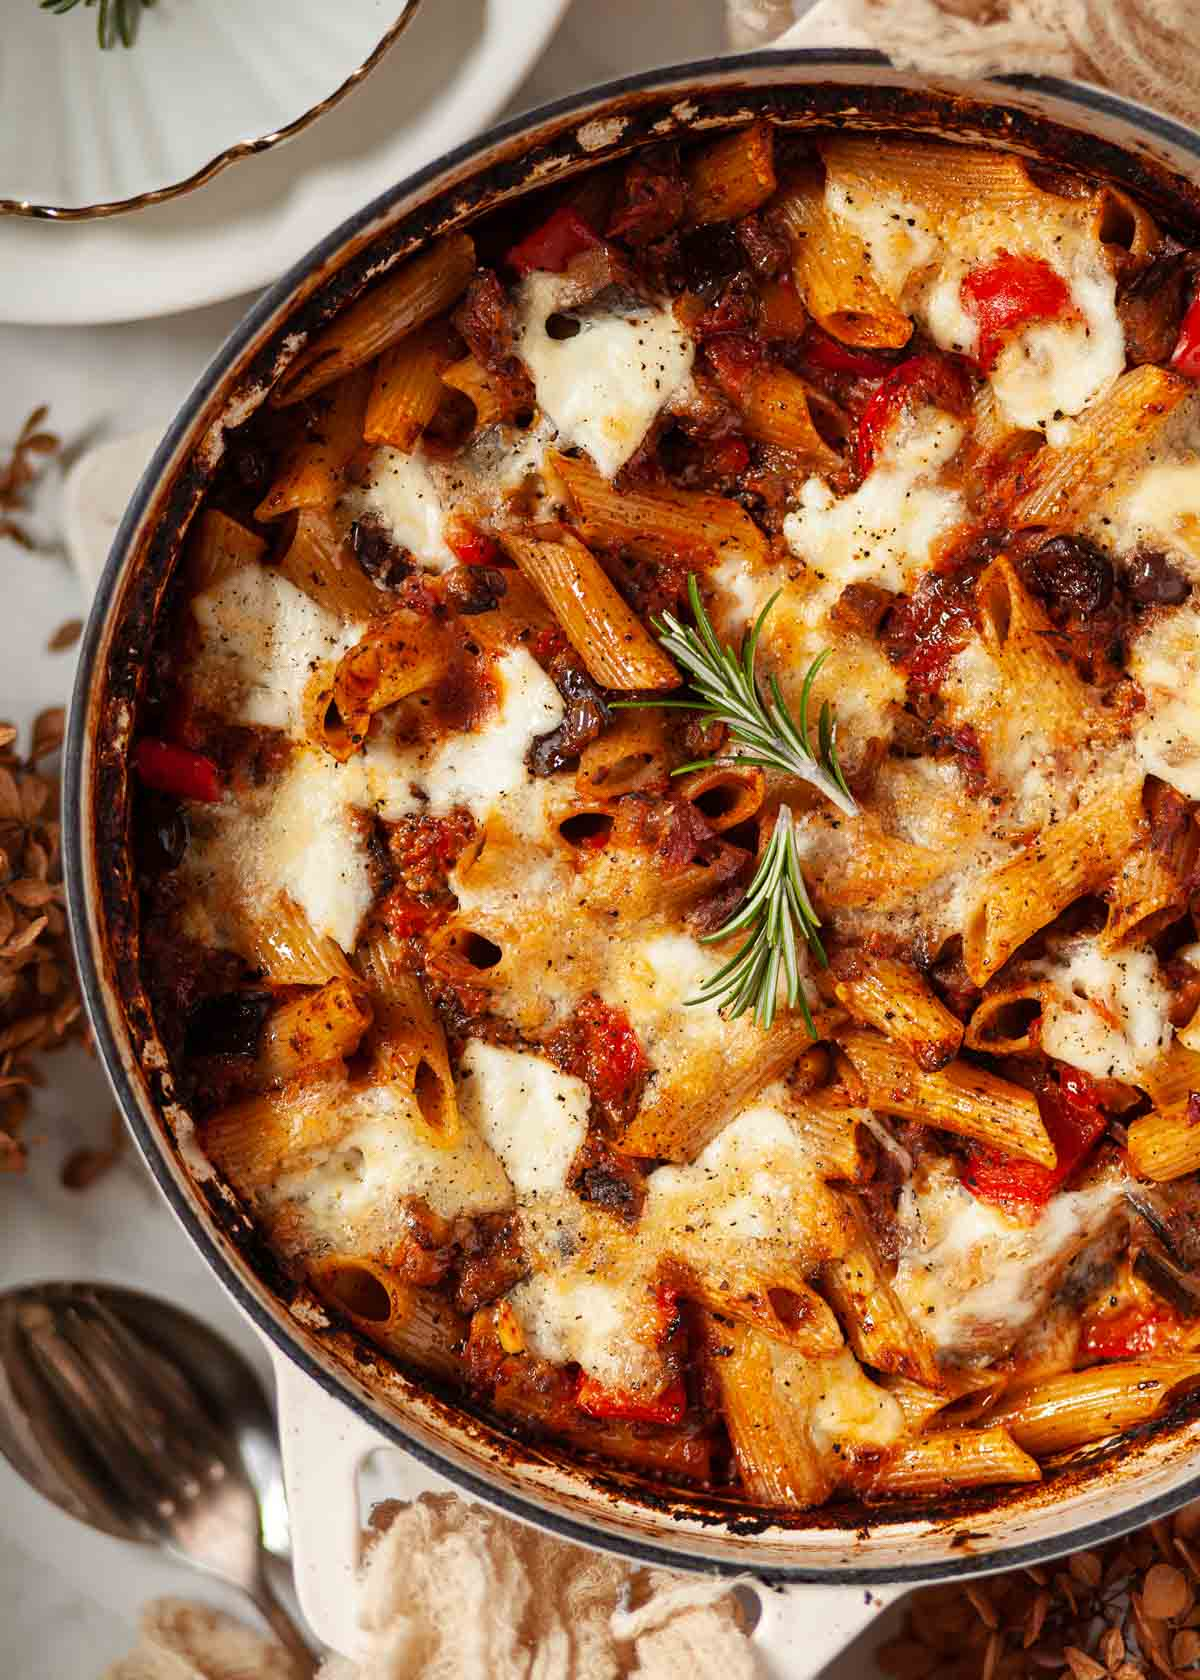 A cooked aubergine pasta bake in a large overproof pot